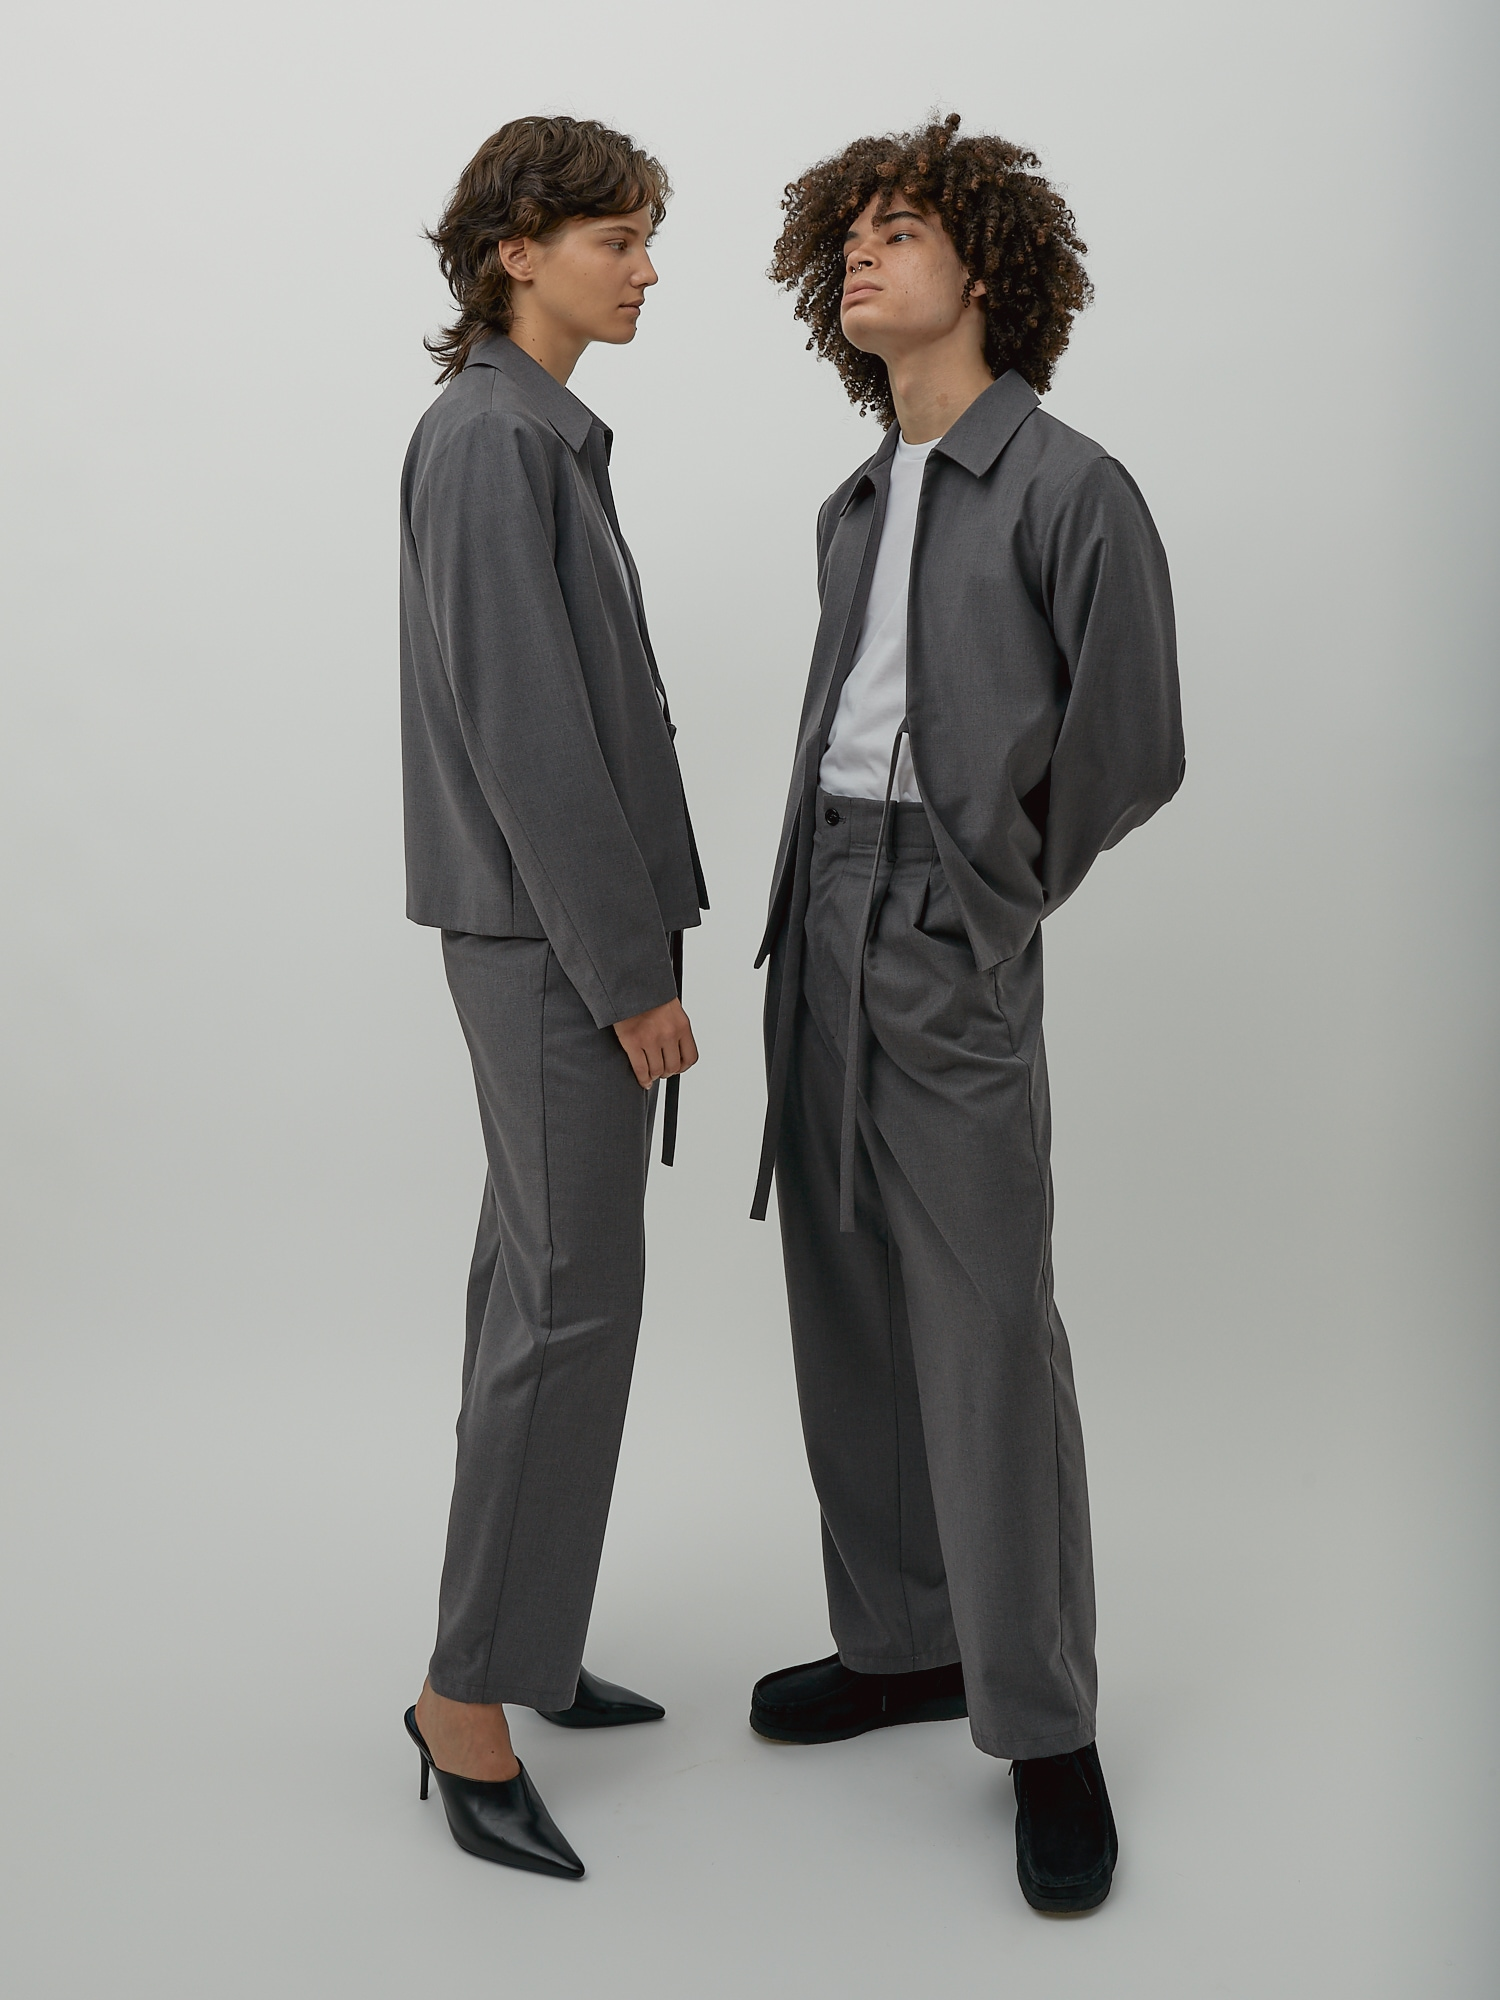 Shop Gender Neutral Suiting by One DNA